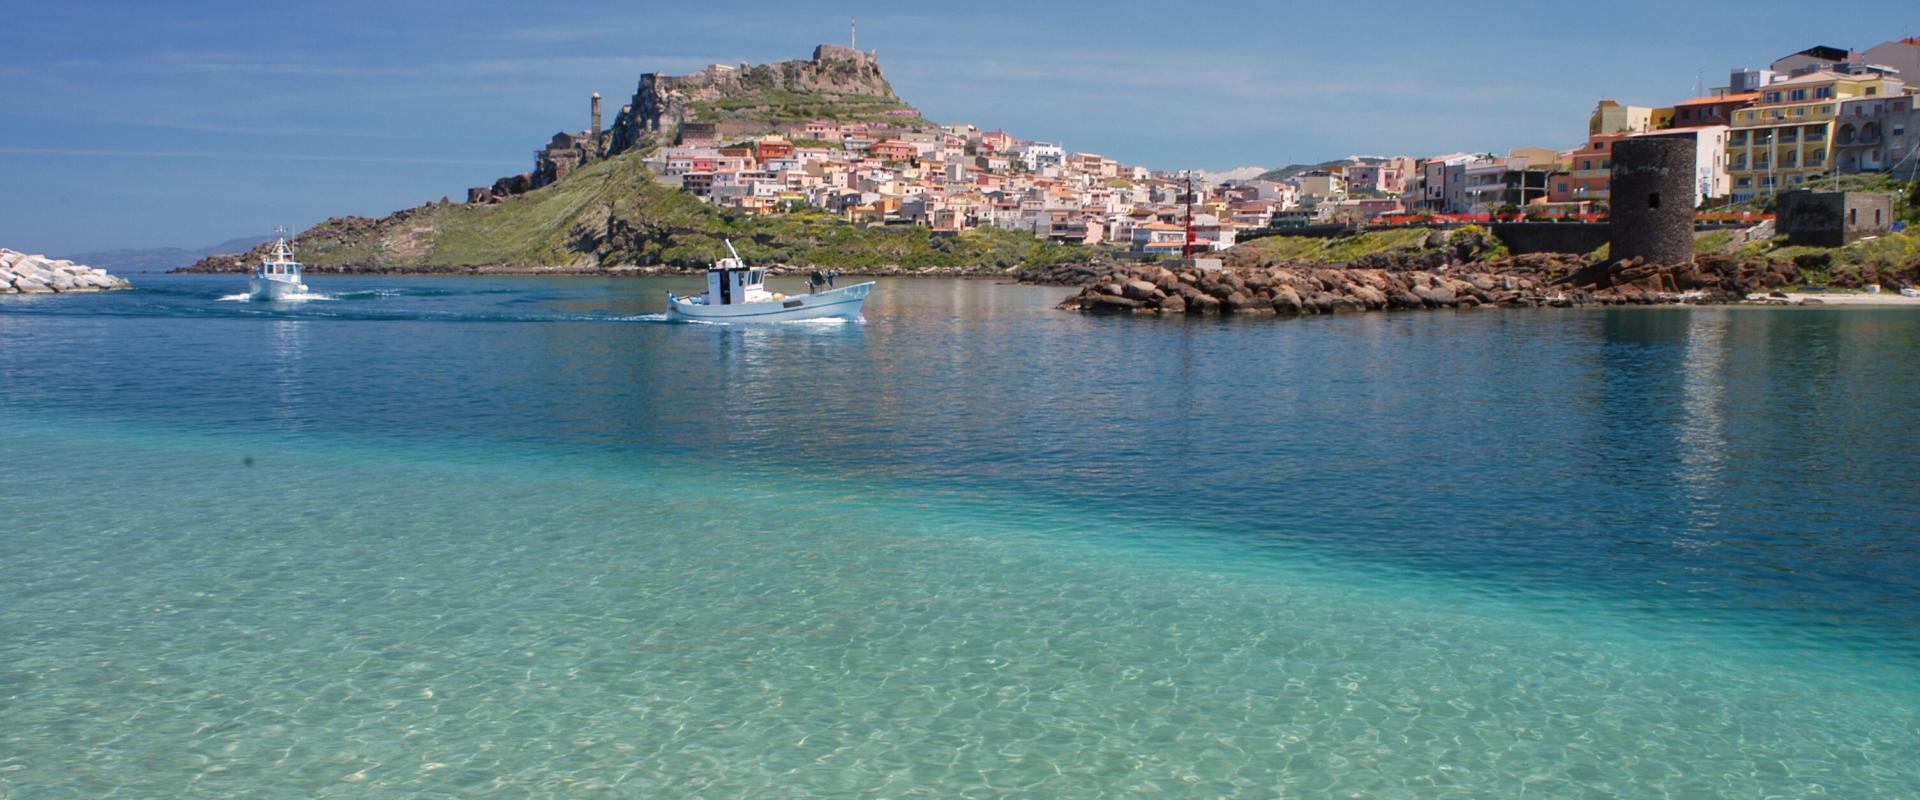 guided tour of castelsardo